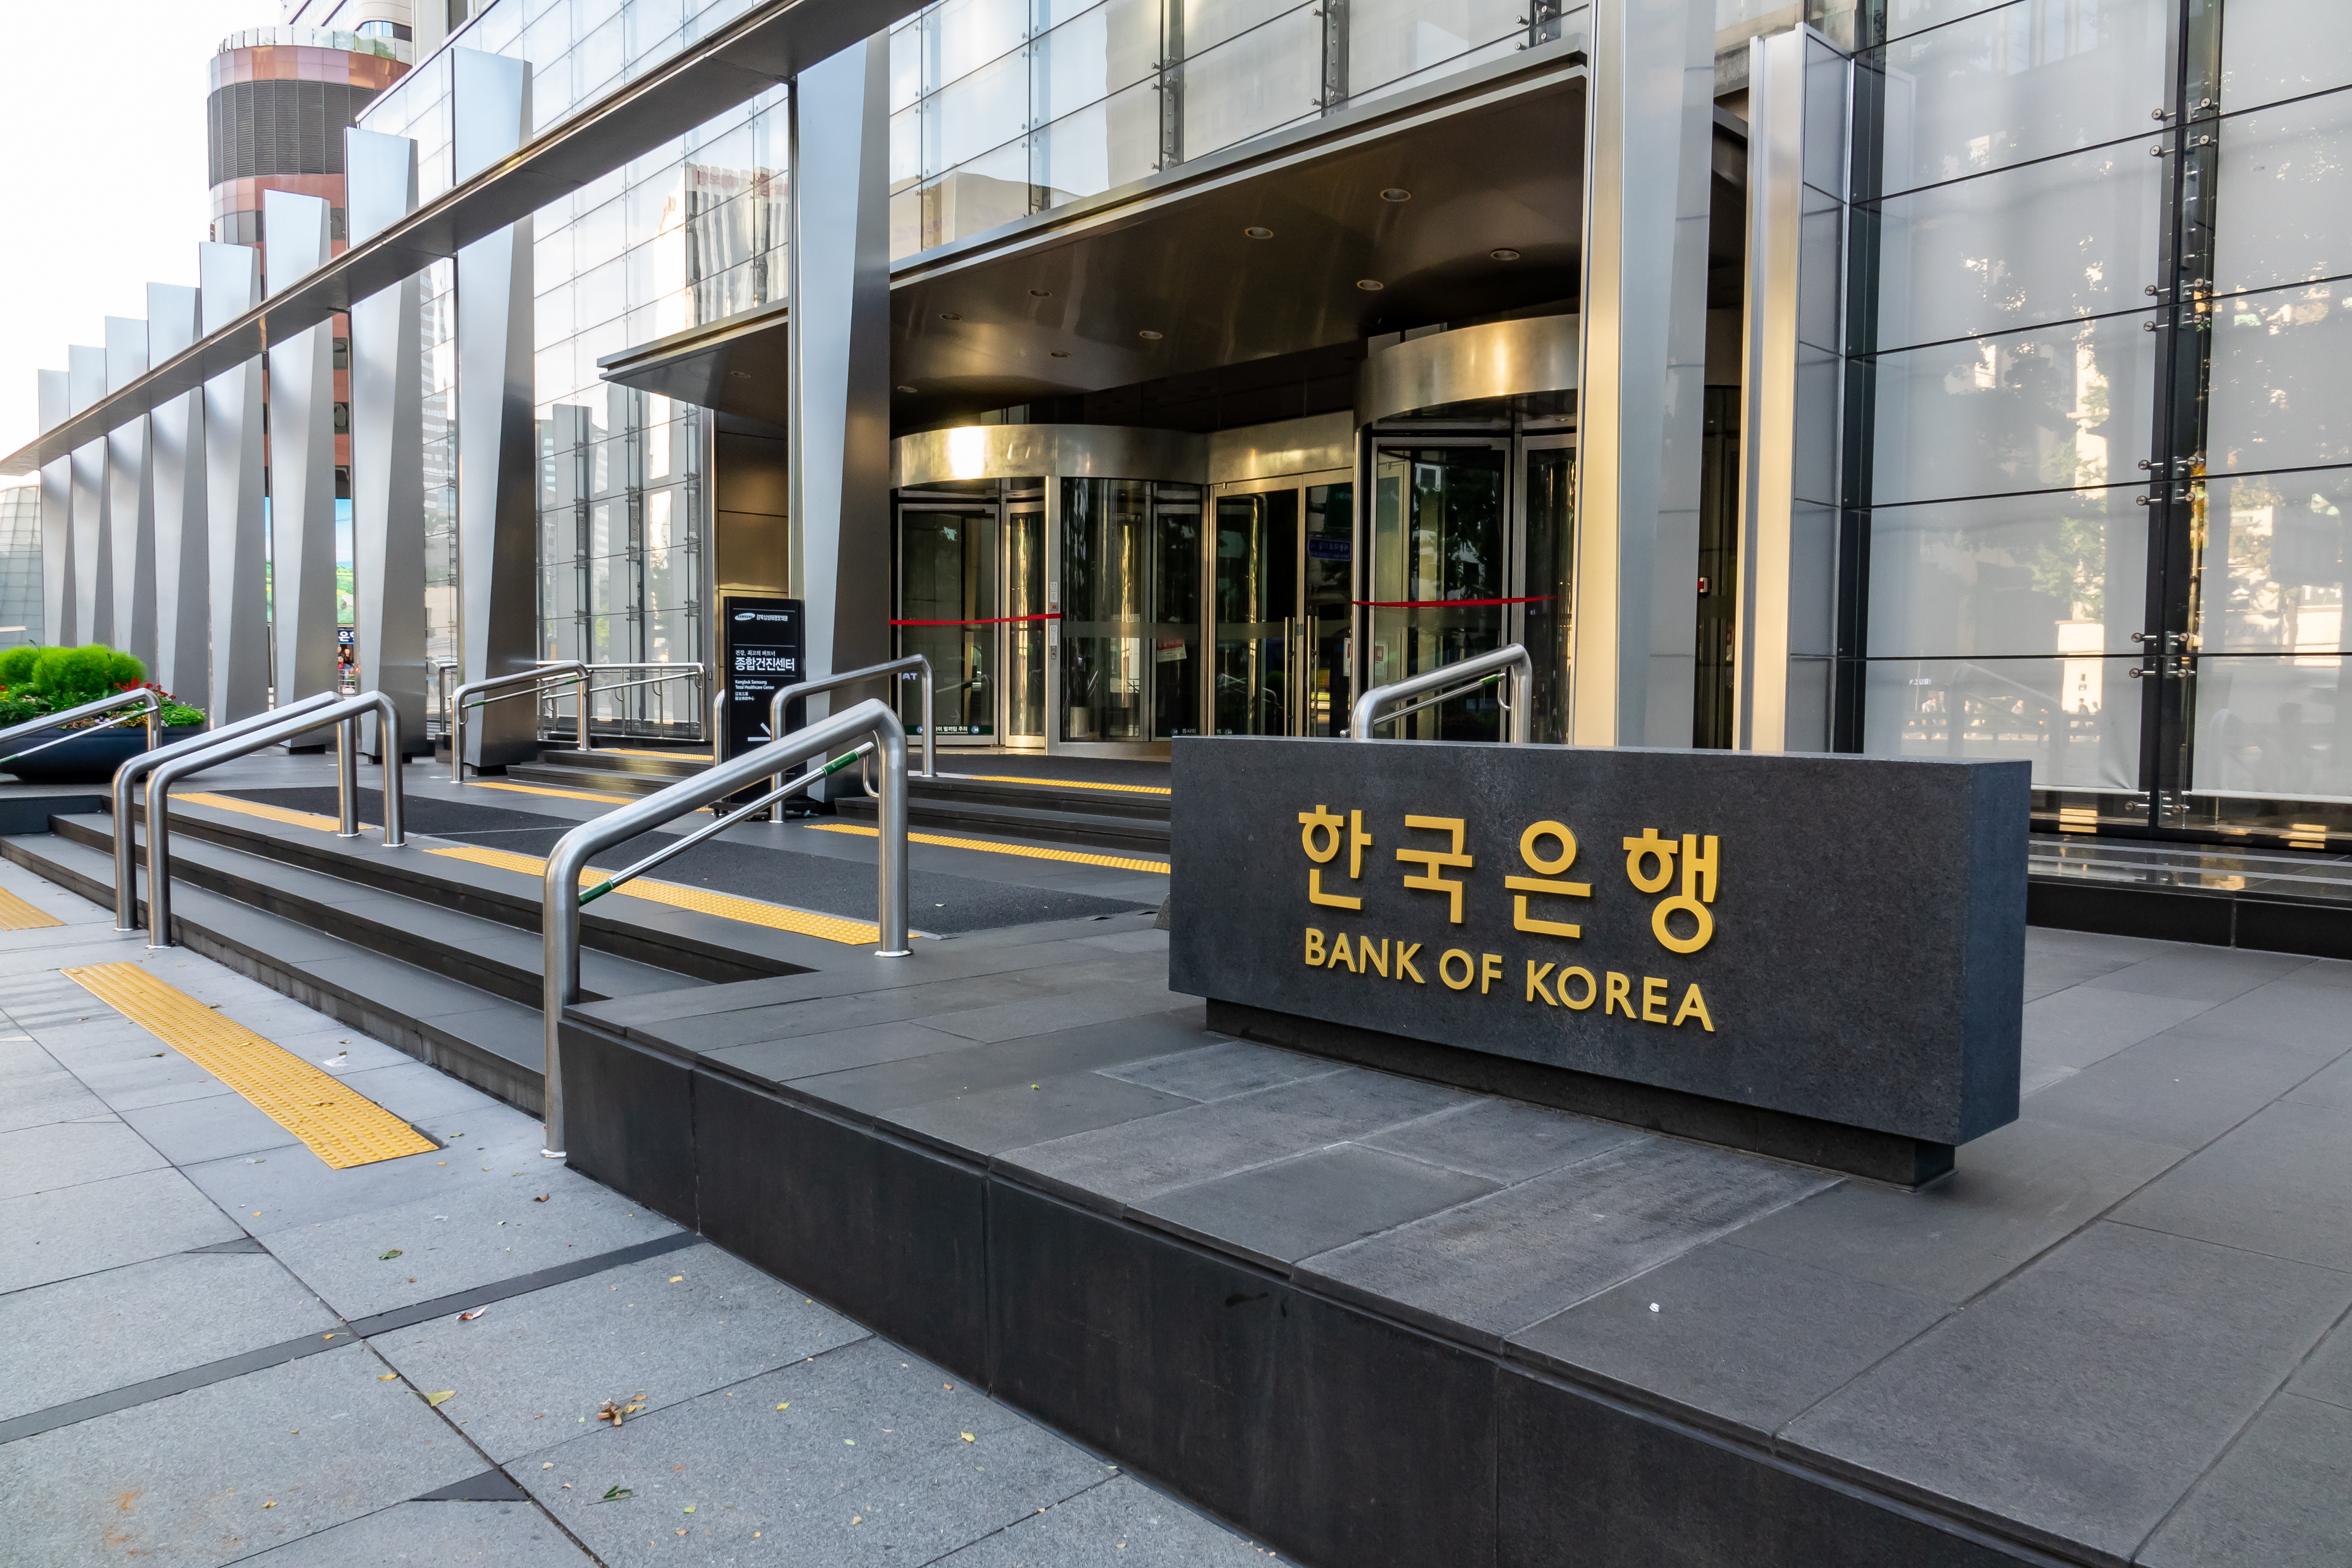 Leveraged crypto trading threatens banking system, says Korea central bank governor